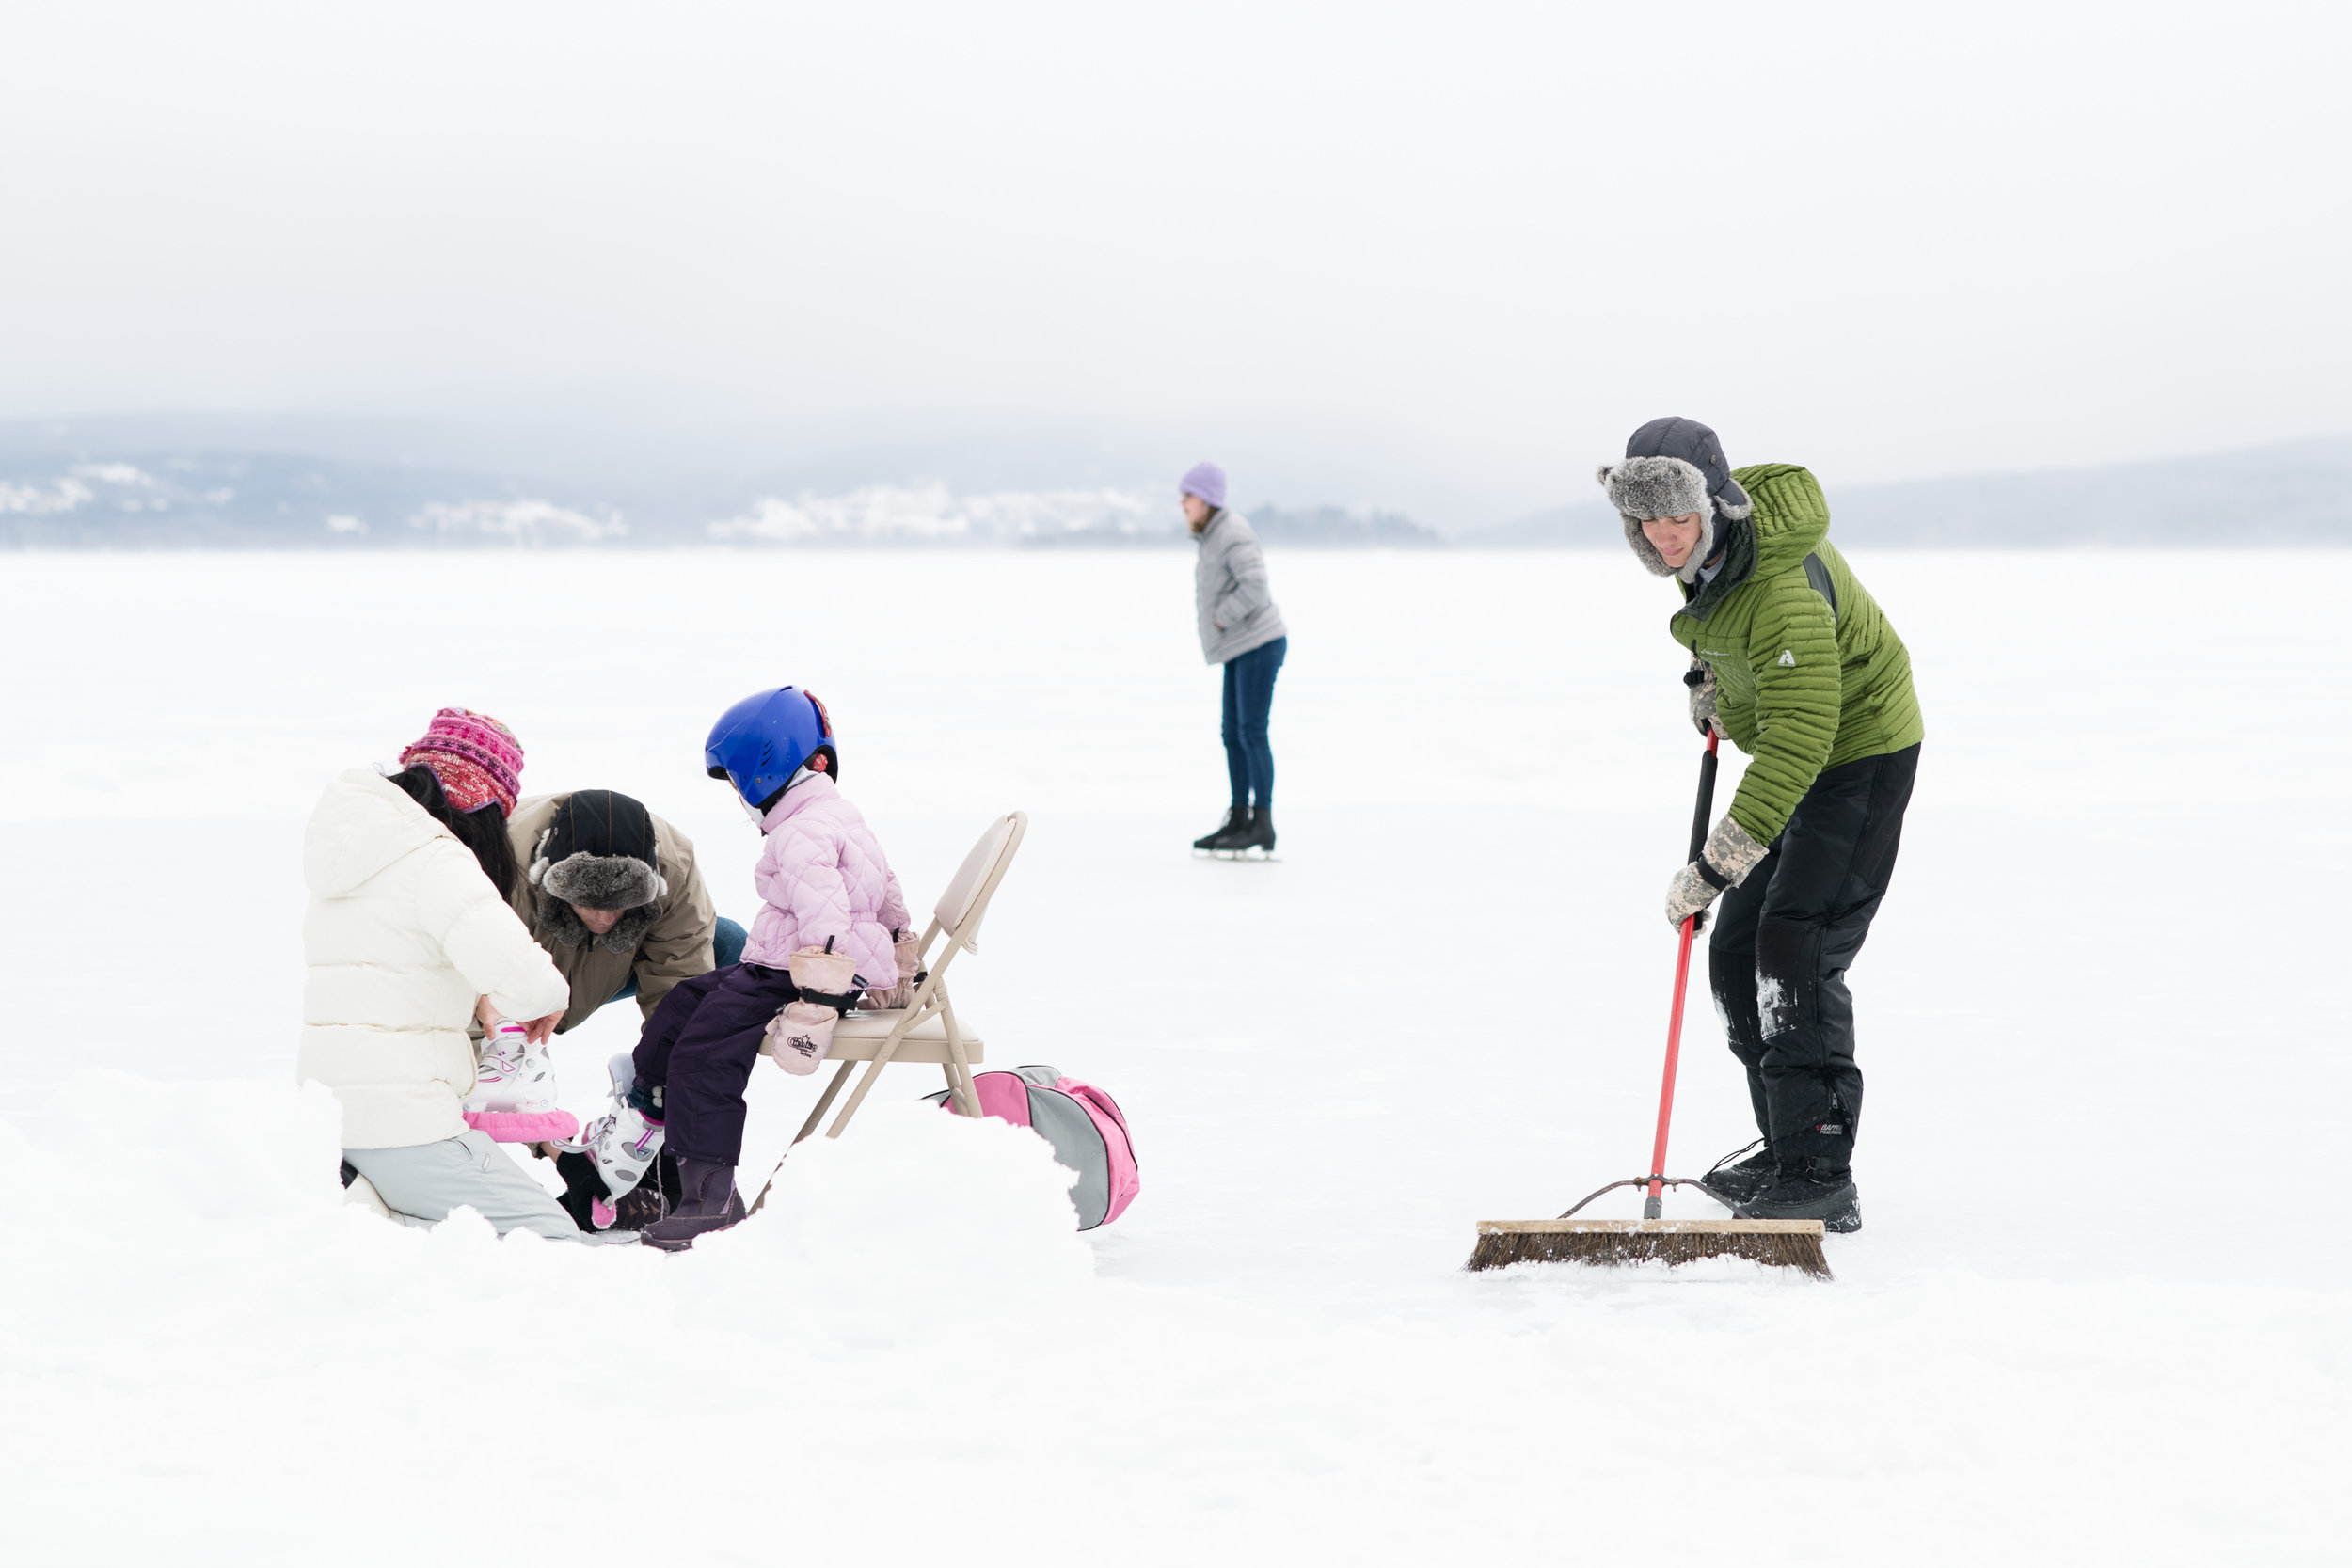 ice-skating-on-rangeley-lake-maine01.jpg